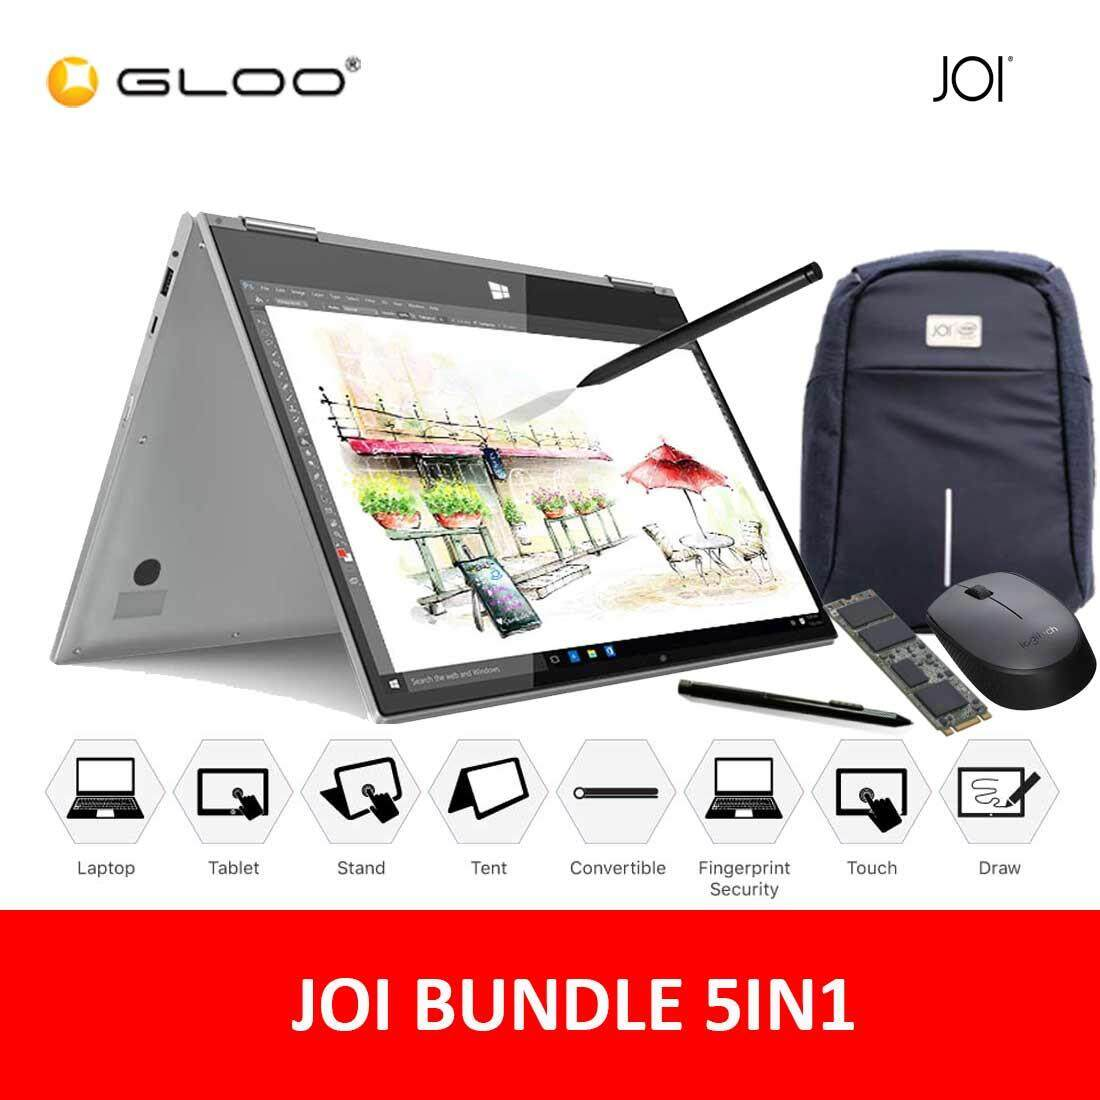 JOI Book Touch 300 + 256GB SATA SSD + Active Pen Pro 300 + Backpack + Wireless Mouse Malaysia